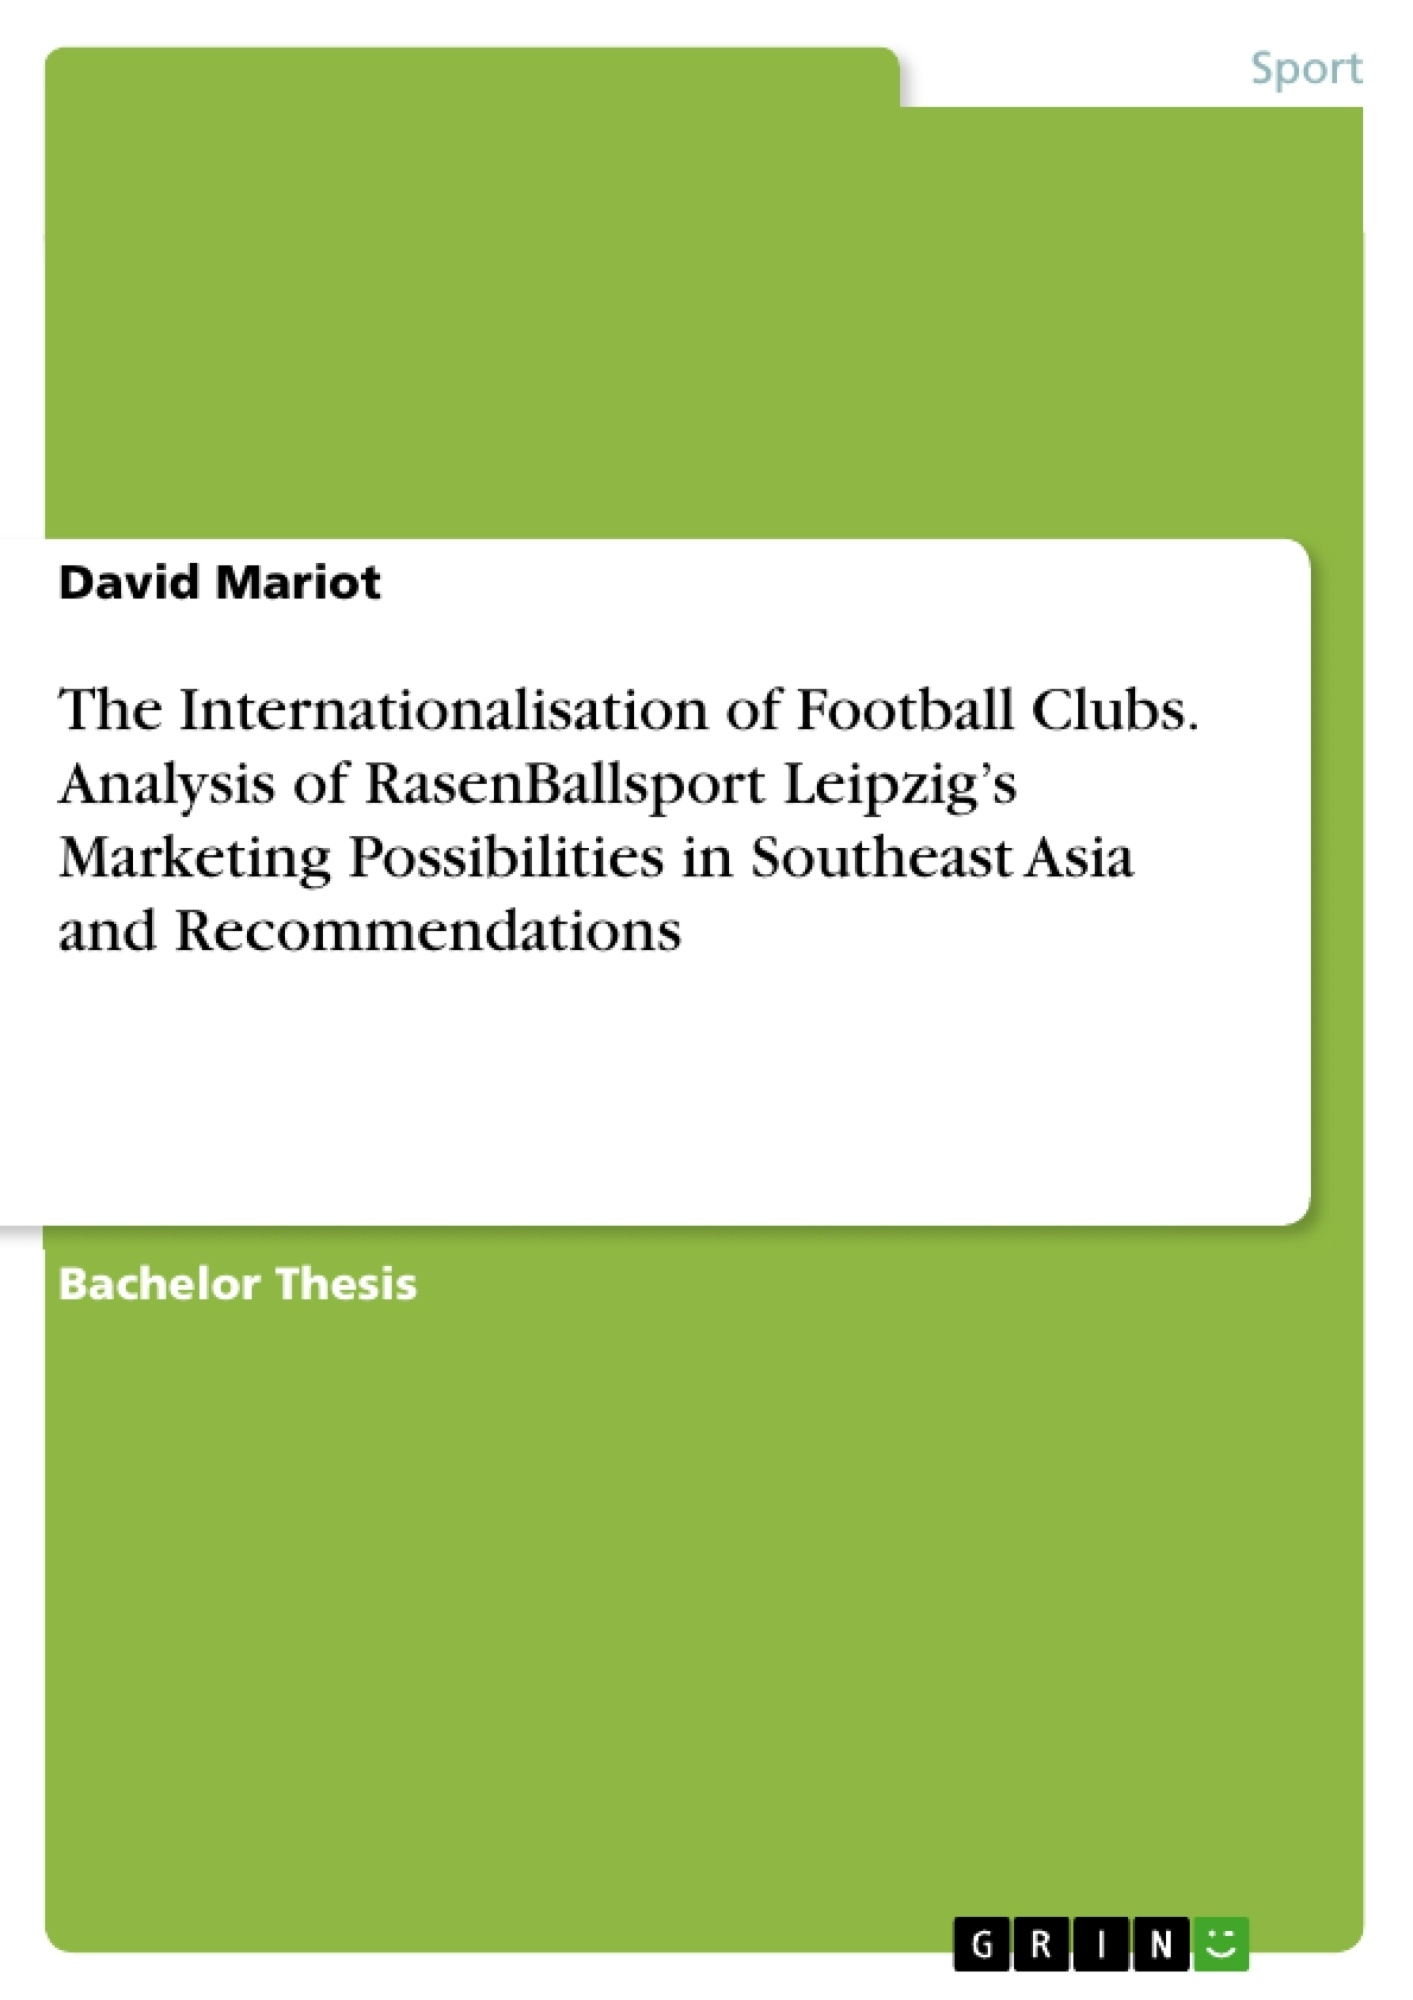 Title: The Internationalisation of Football Clubs. Analysis of RasenBallsport Leipzig's Marketing Possibilities in Southeast Asia and Recommendations